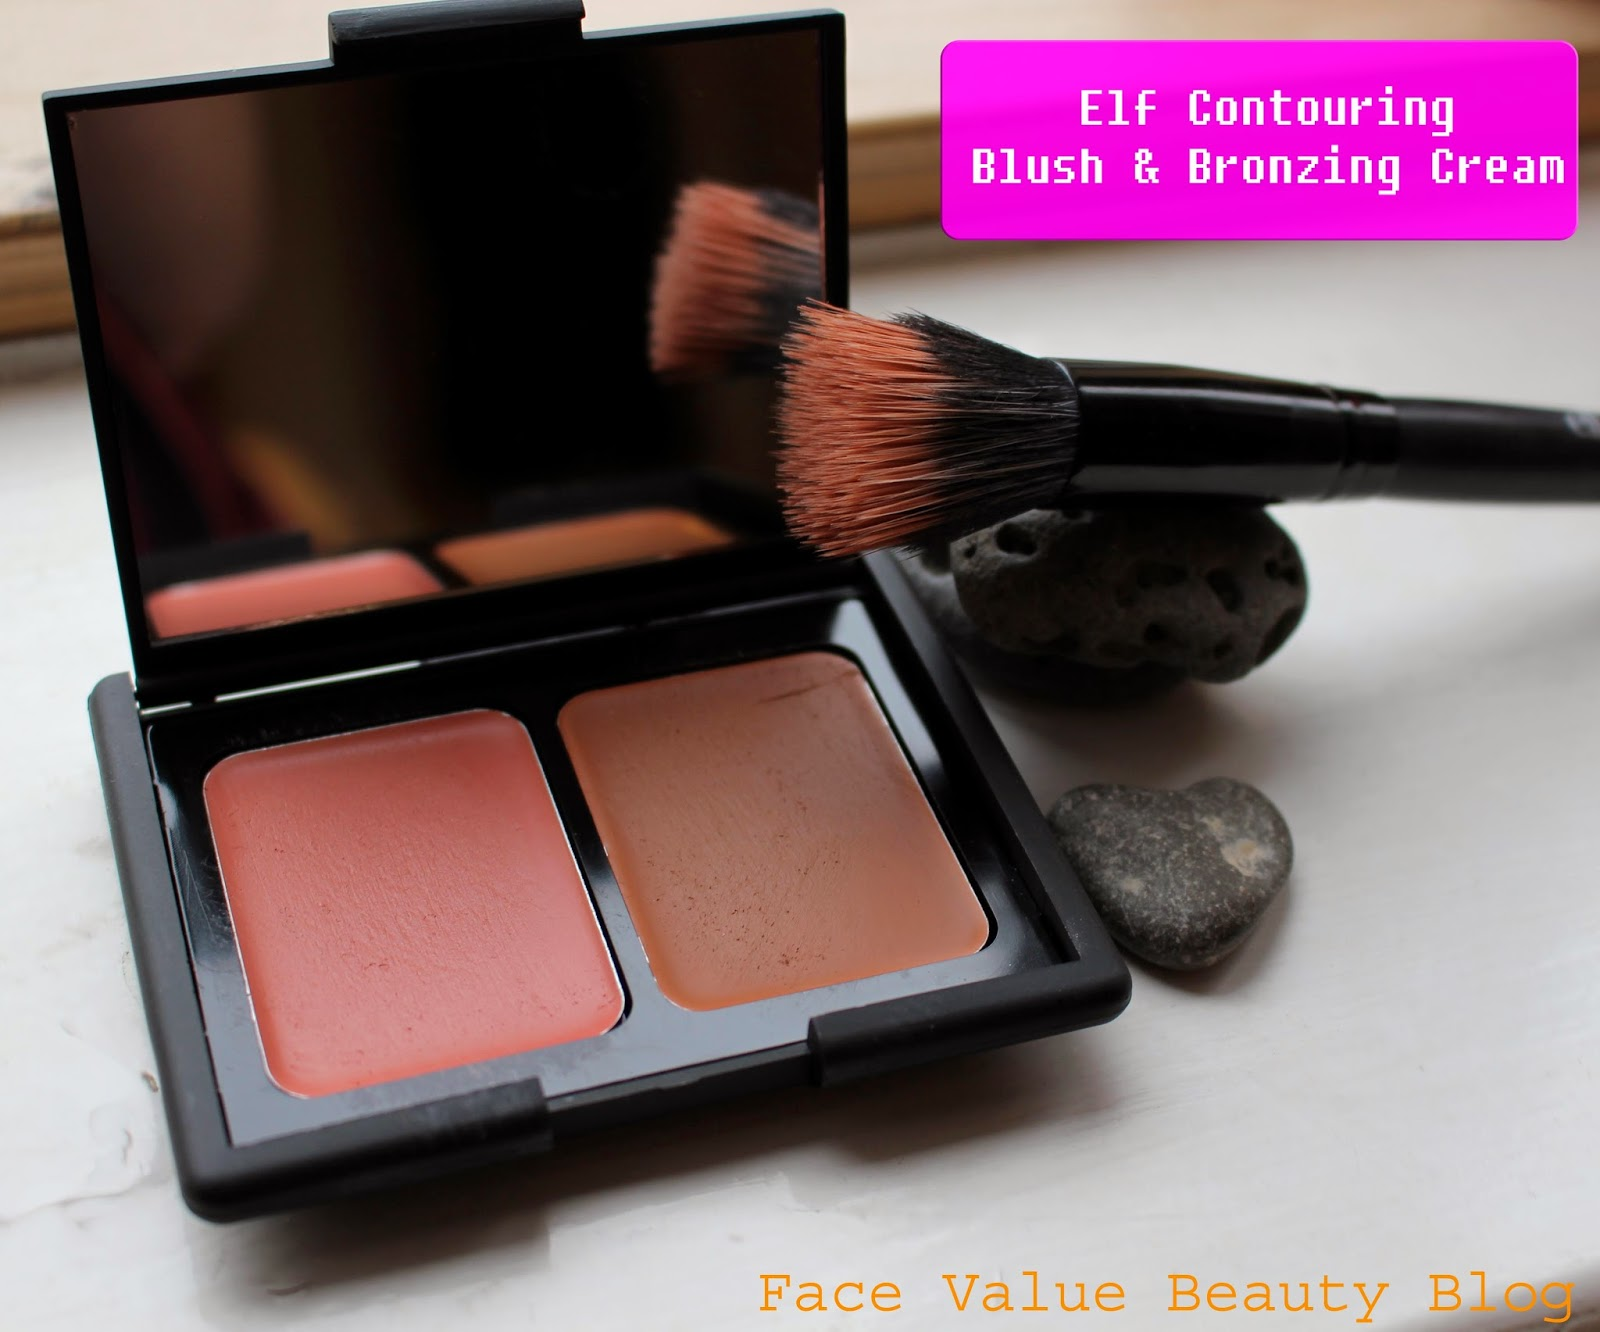 elf cosmetics stipple brush st lucia cream blush bronzer beauty blog review